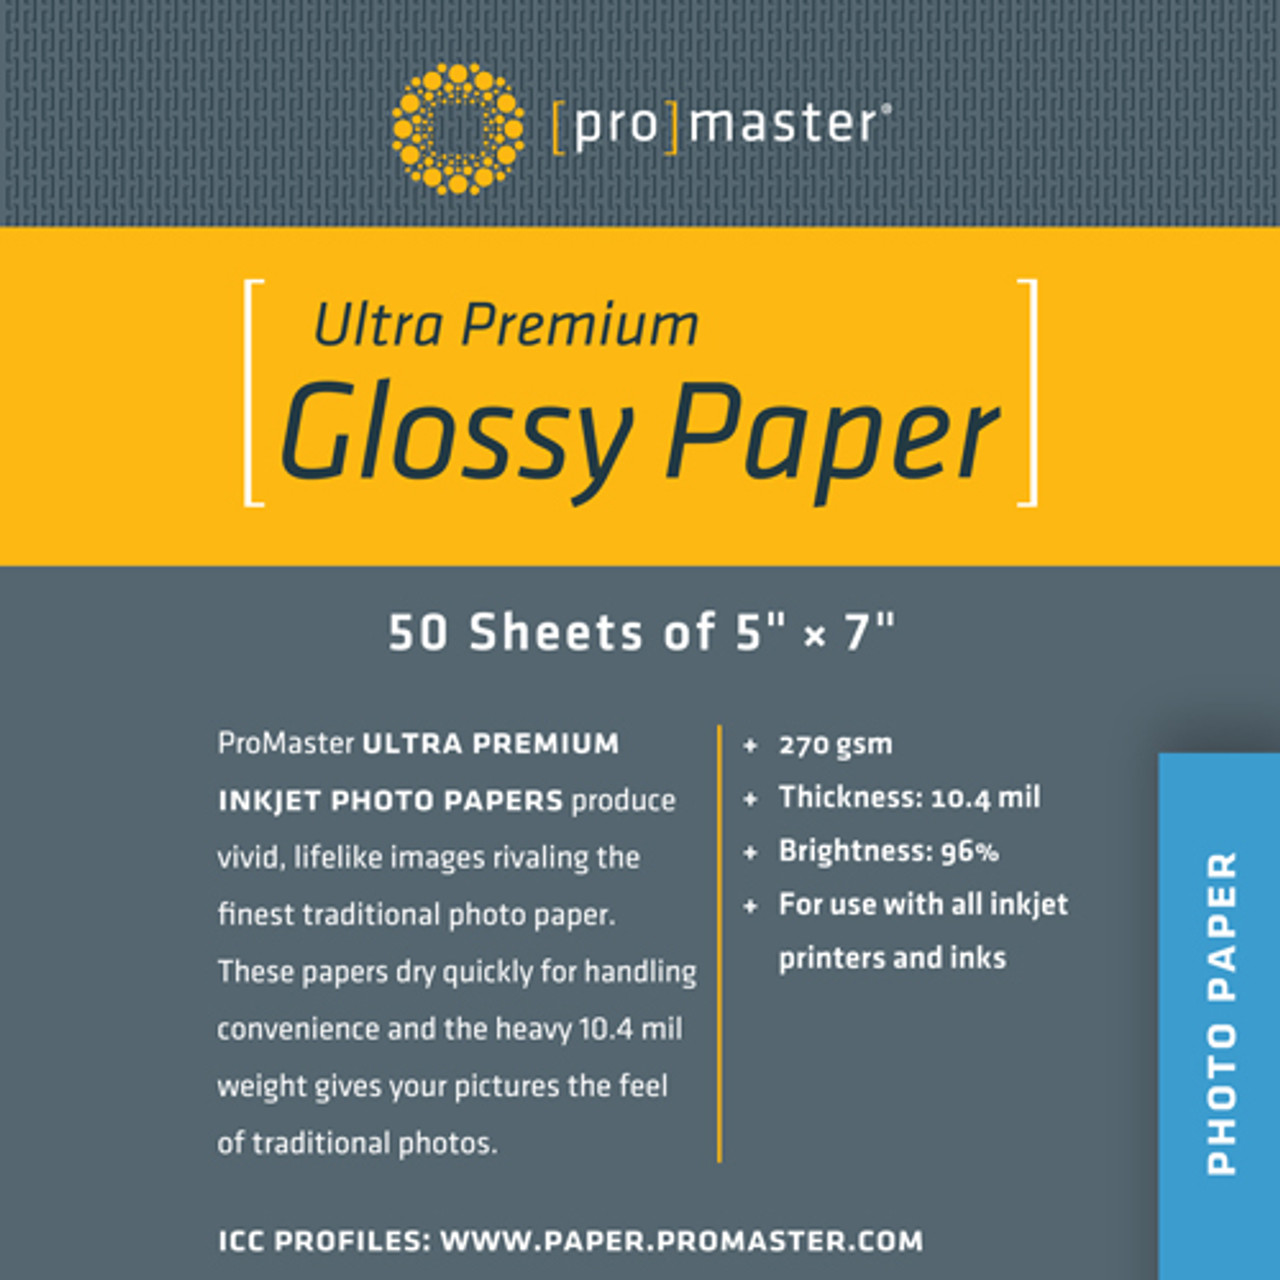 """ProMaster Ultra Premium Glossy Paper 5"""" x 7"""" (50 Sheets)"""